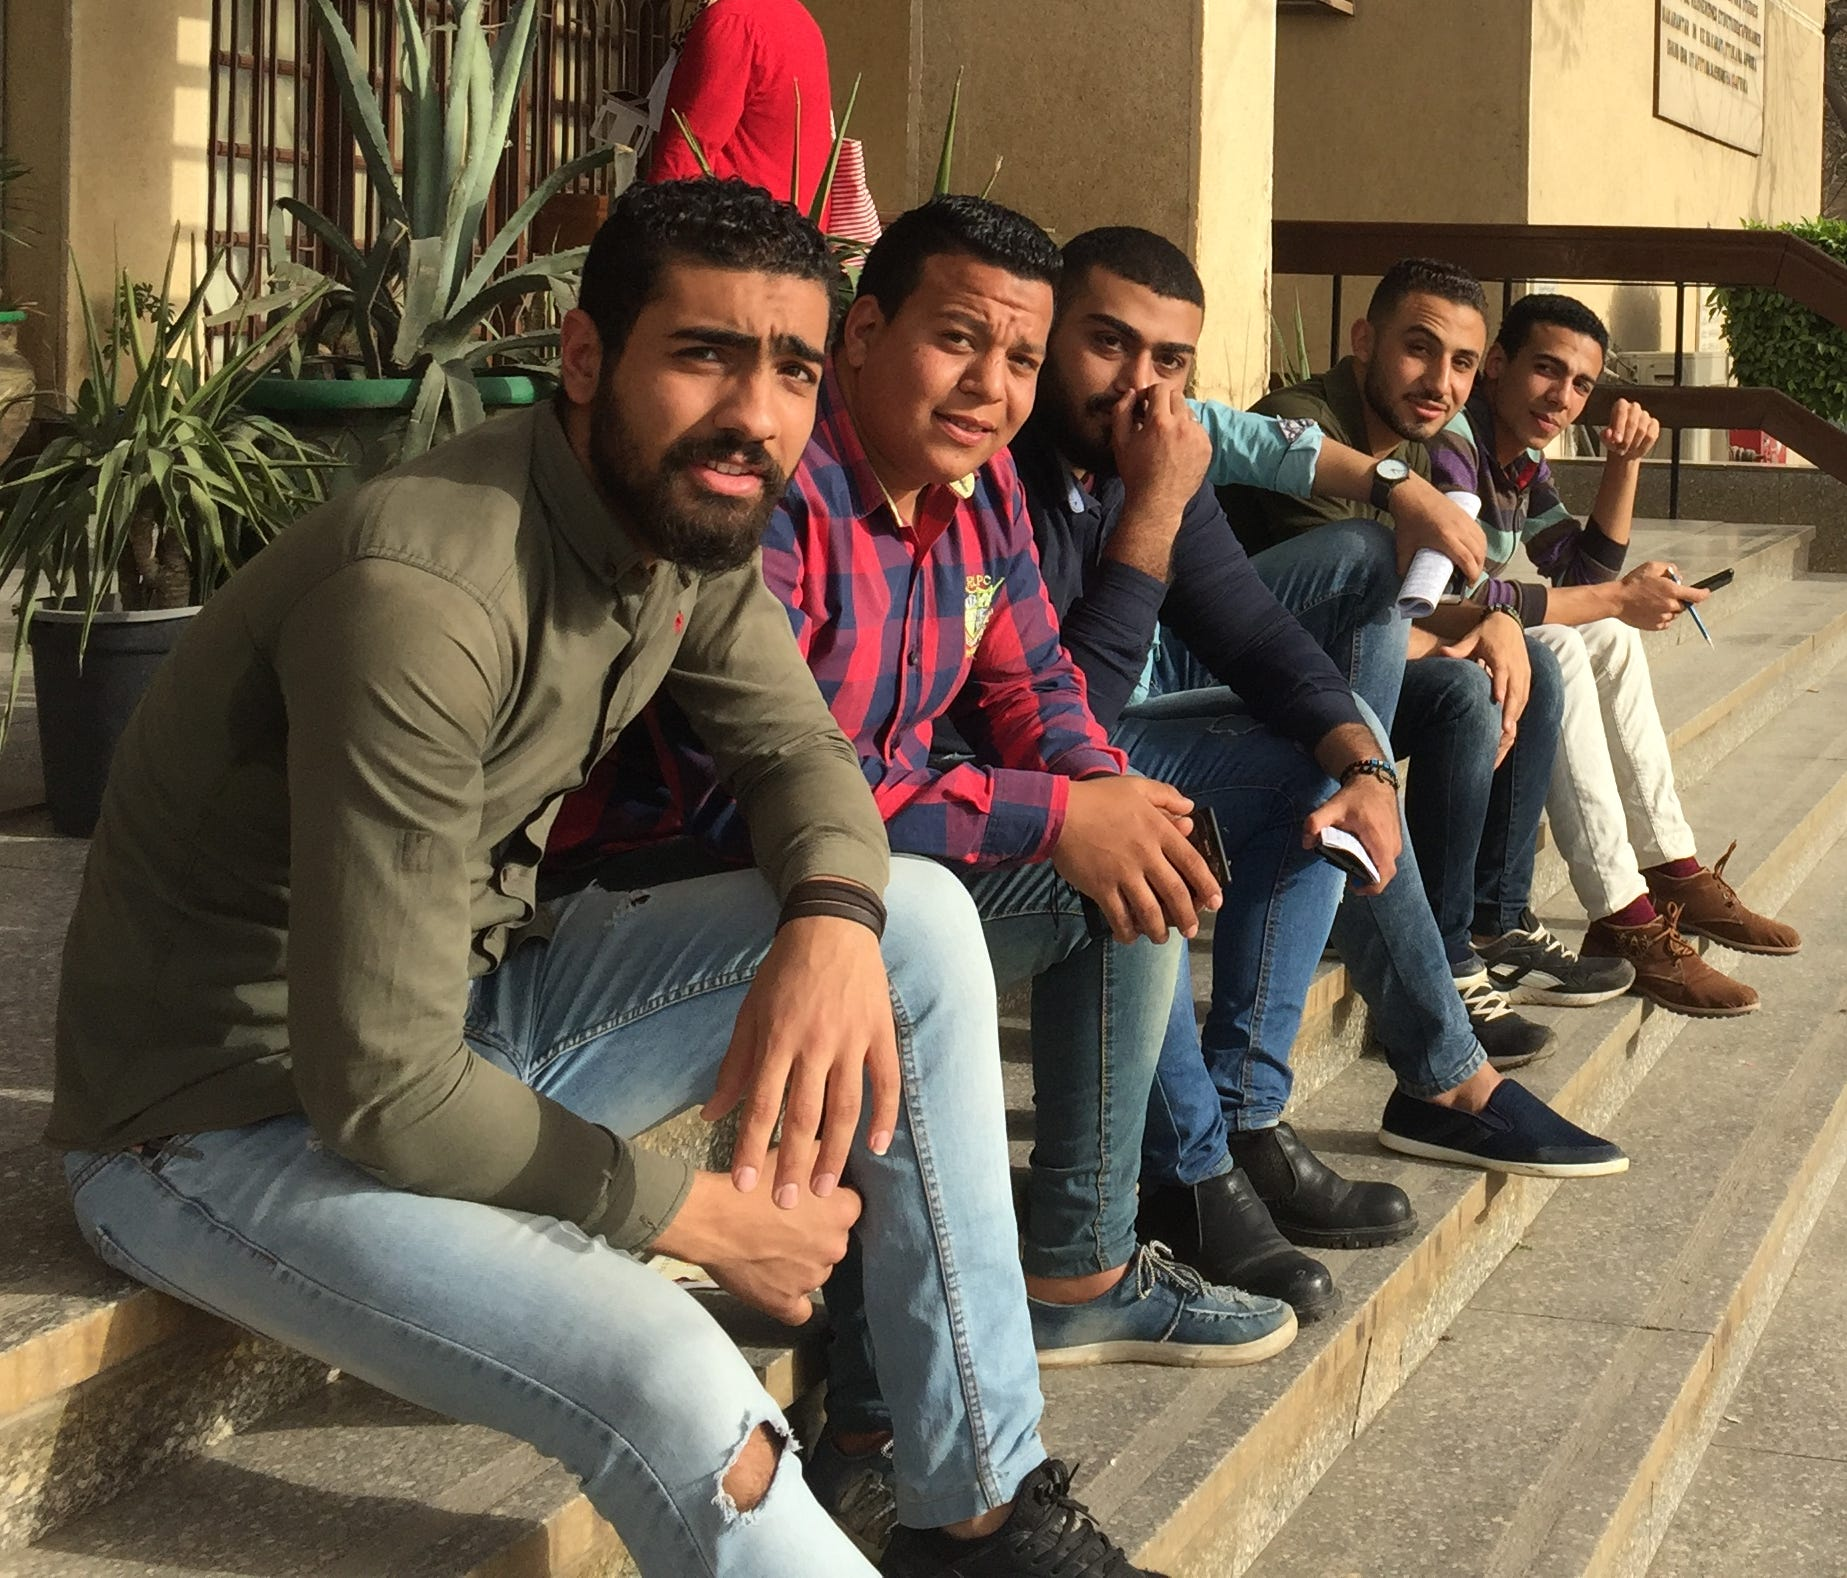 Cairo University undergraduates take a break outside the campus examination hall. All student and faculty political activities have been banned at Egypt's 43 public and private universities since the 2013 ascension of Abdel Fatah El-Sissi to power.